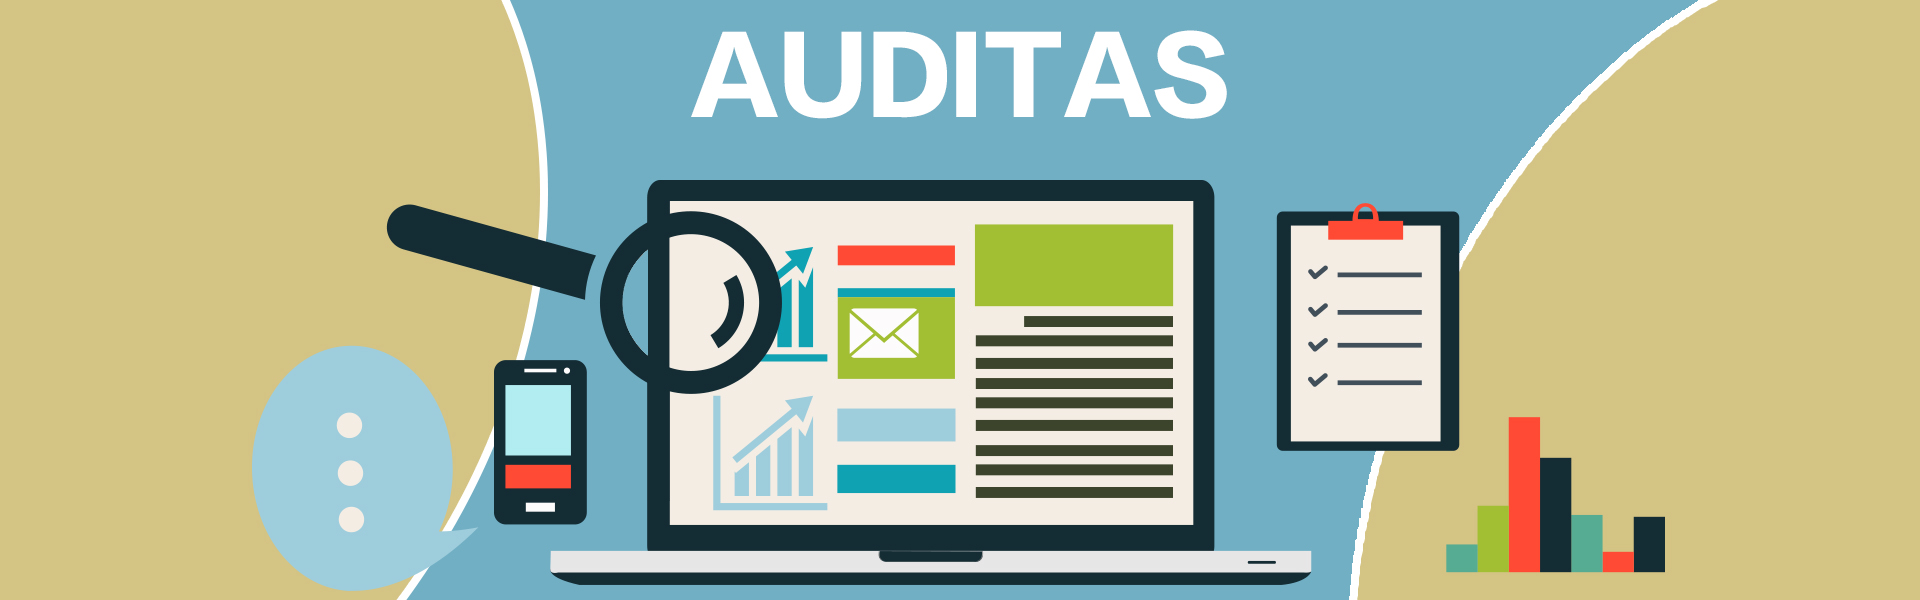 e-marketingo auditas